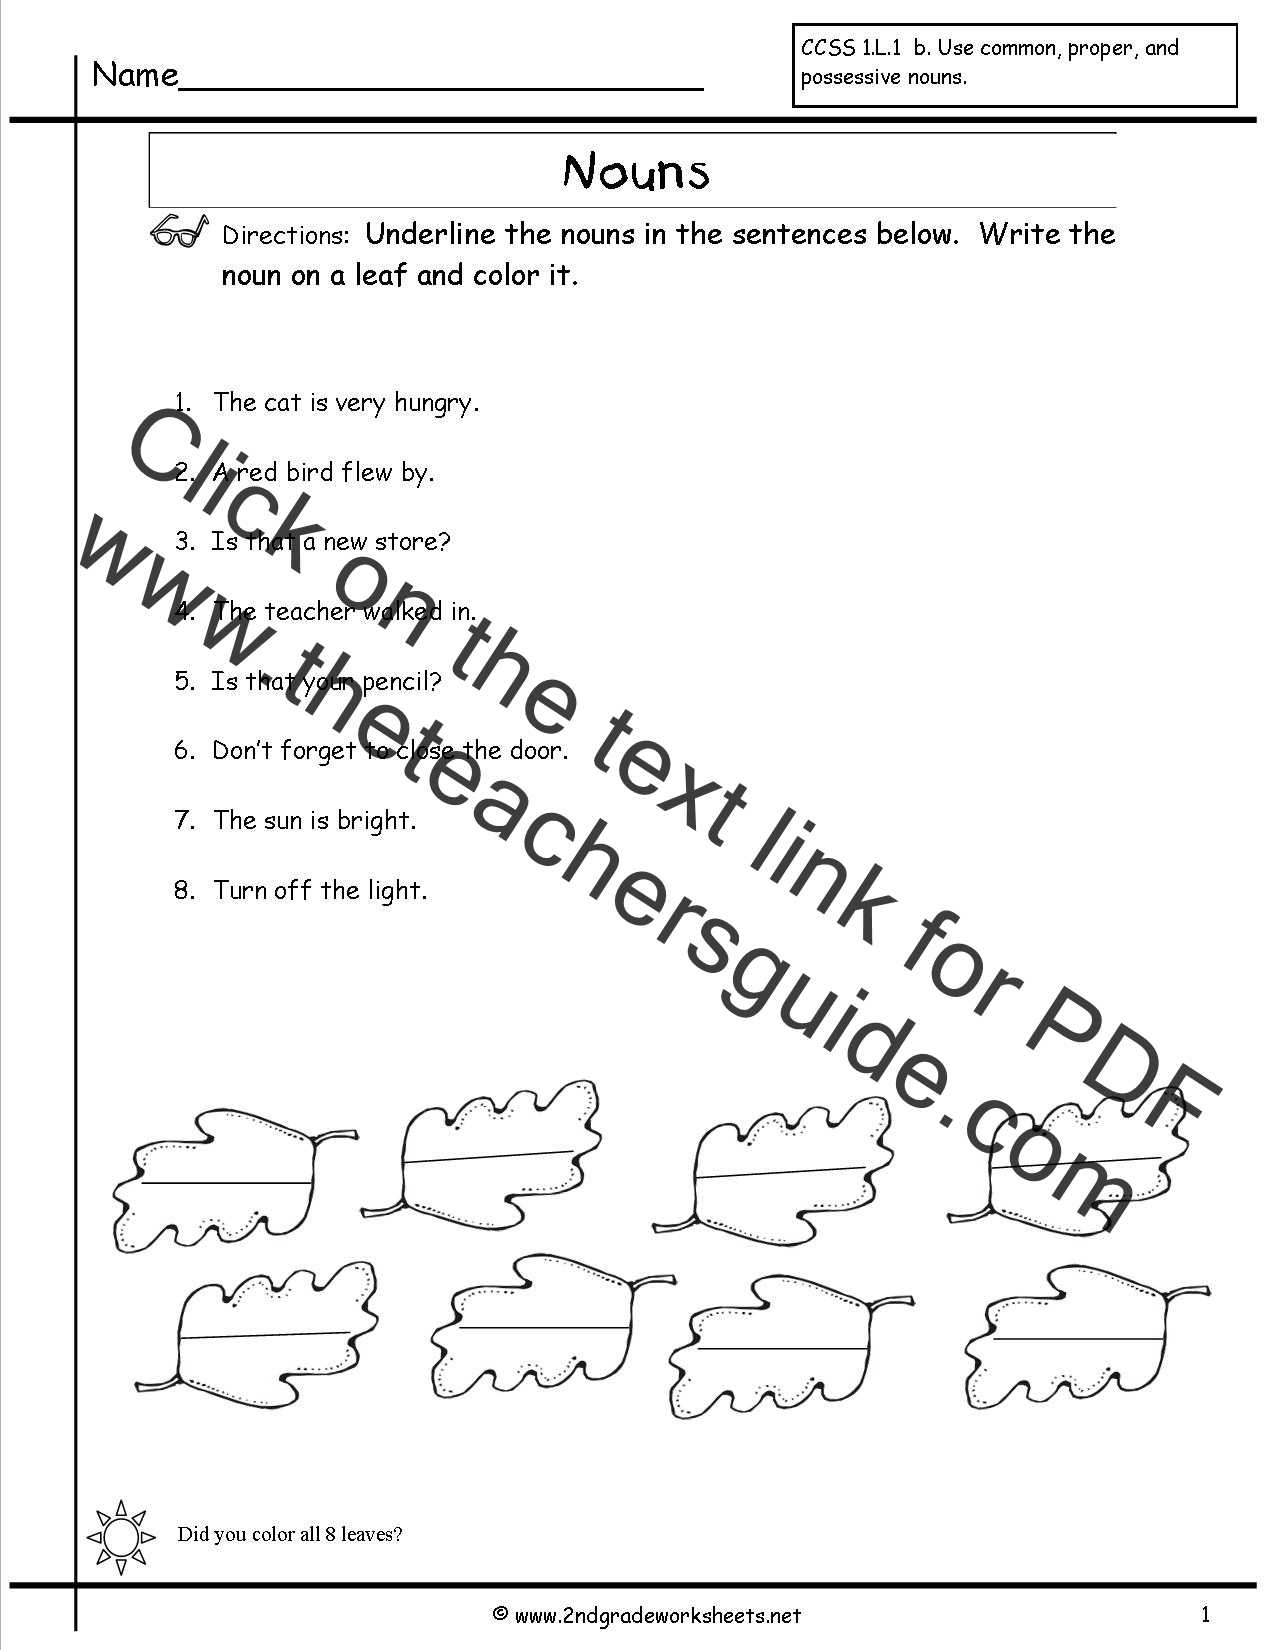 Worksheet Noun Worksheets 2nd Grade nouns worksheets and printouts worksheet